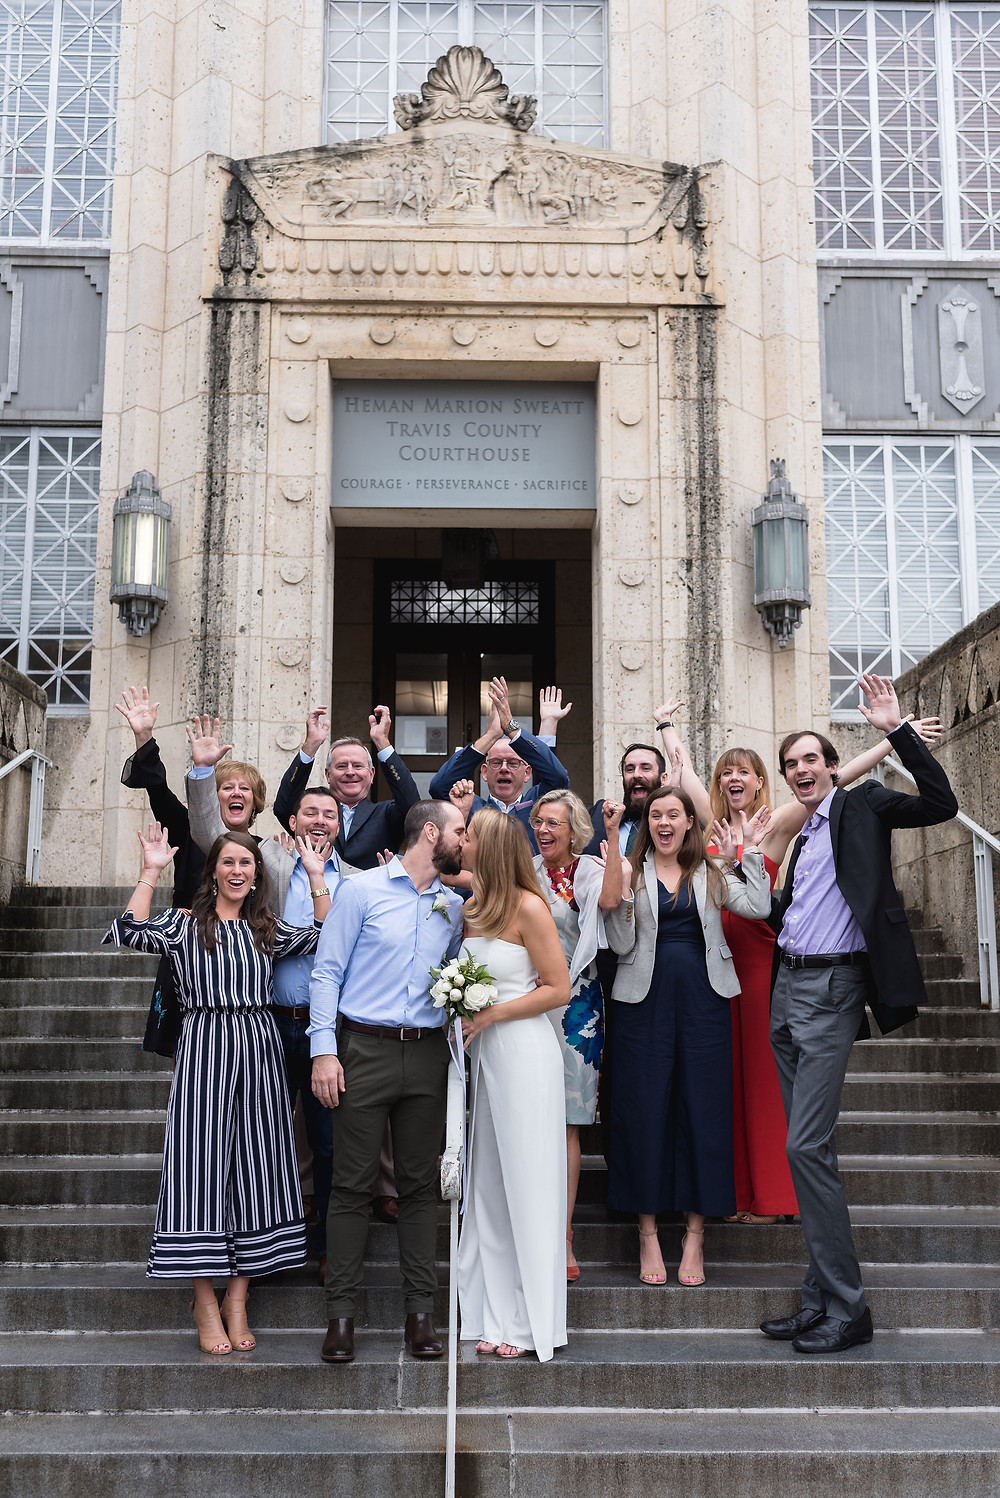 travis county courthouse elopement front steps